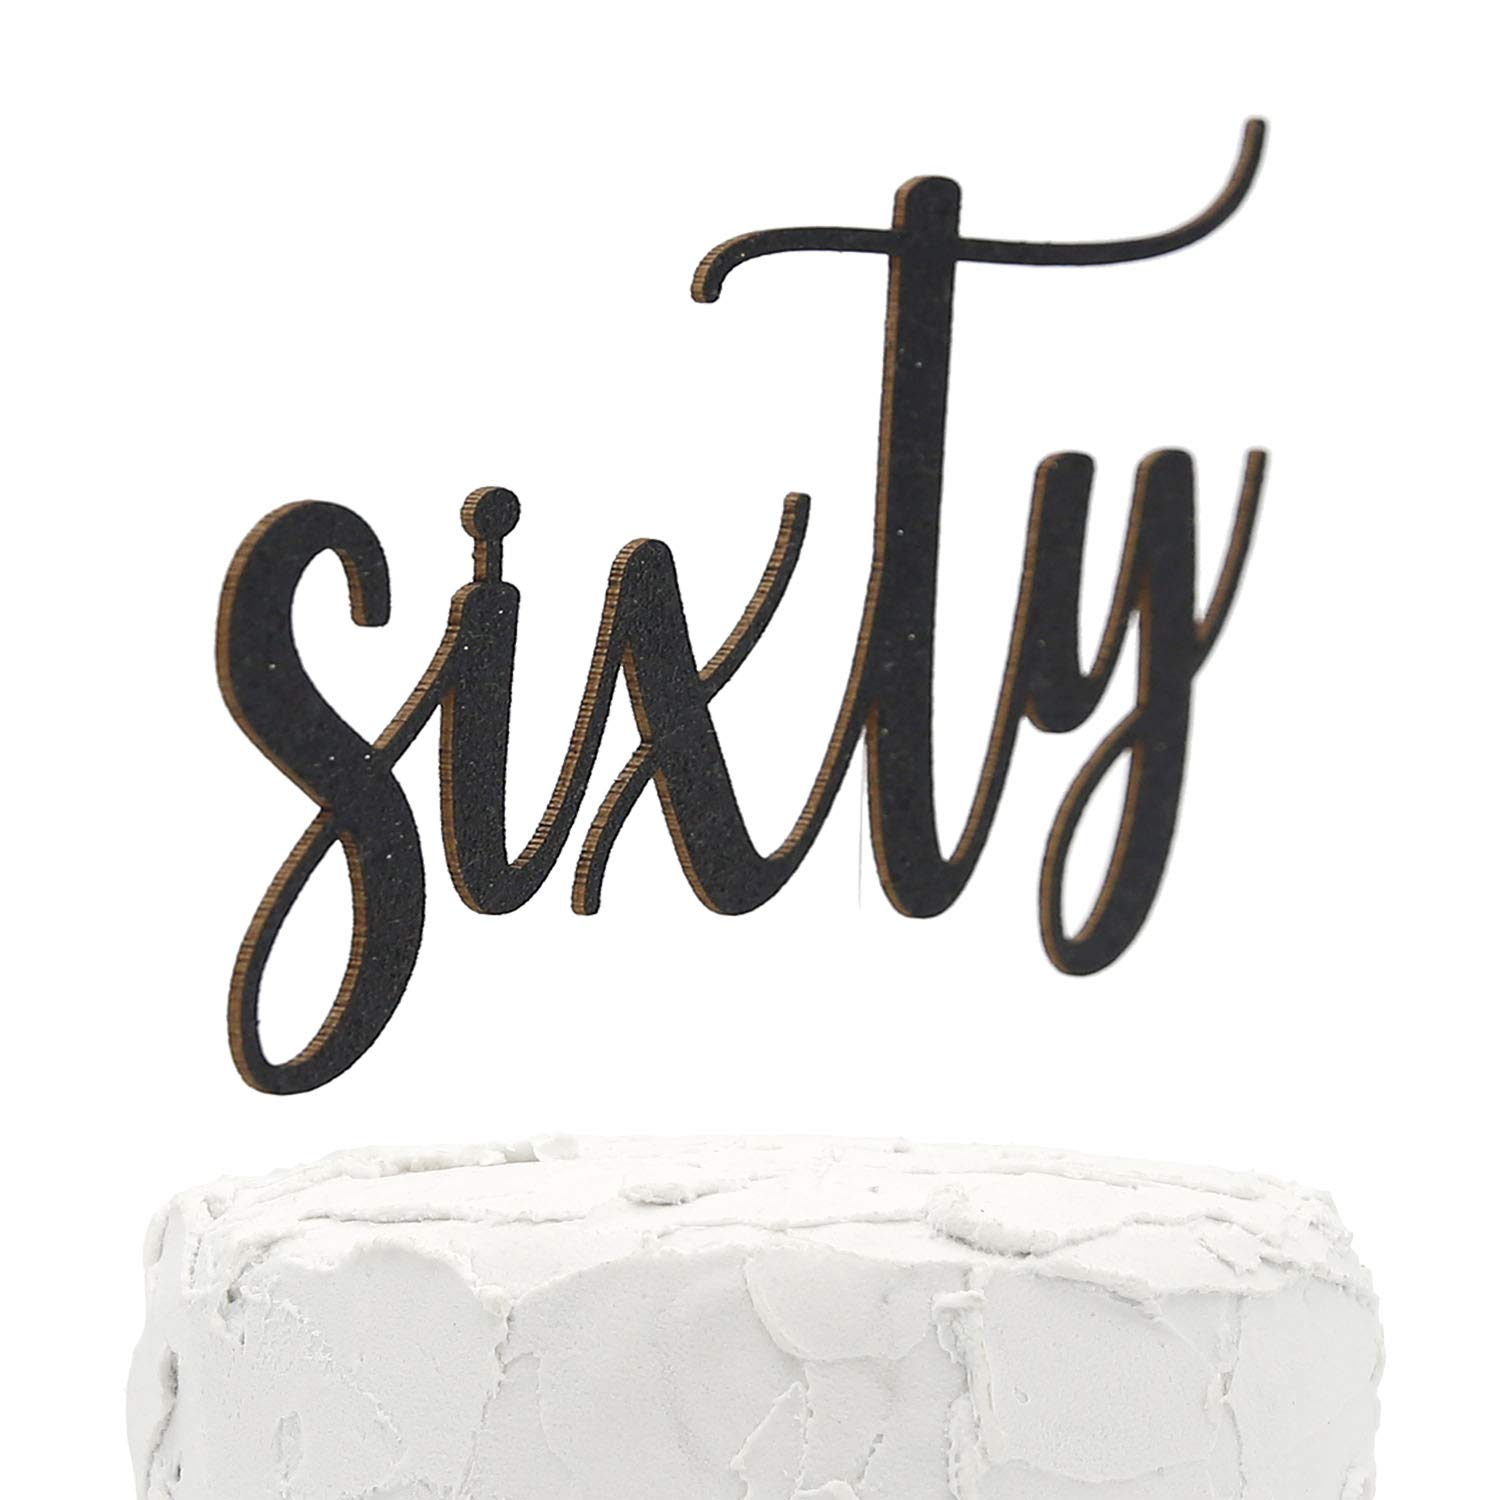 NANASUKO 60th Birthday Cake Topper sixty Sided Max 90% OFF OFFicial site Black - Double